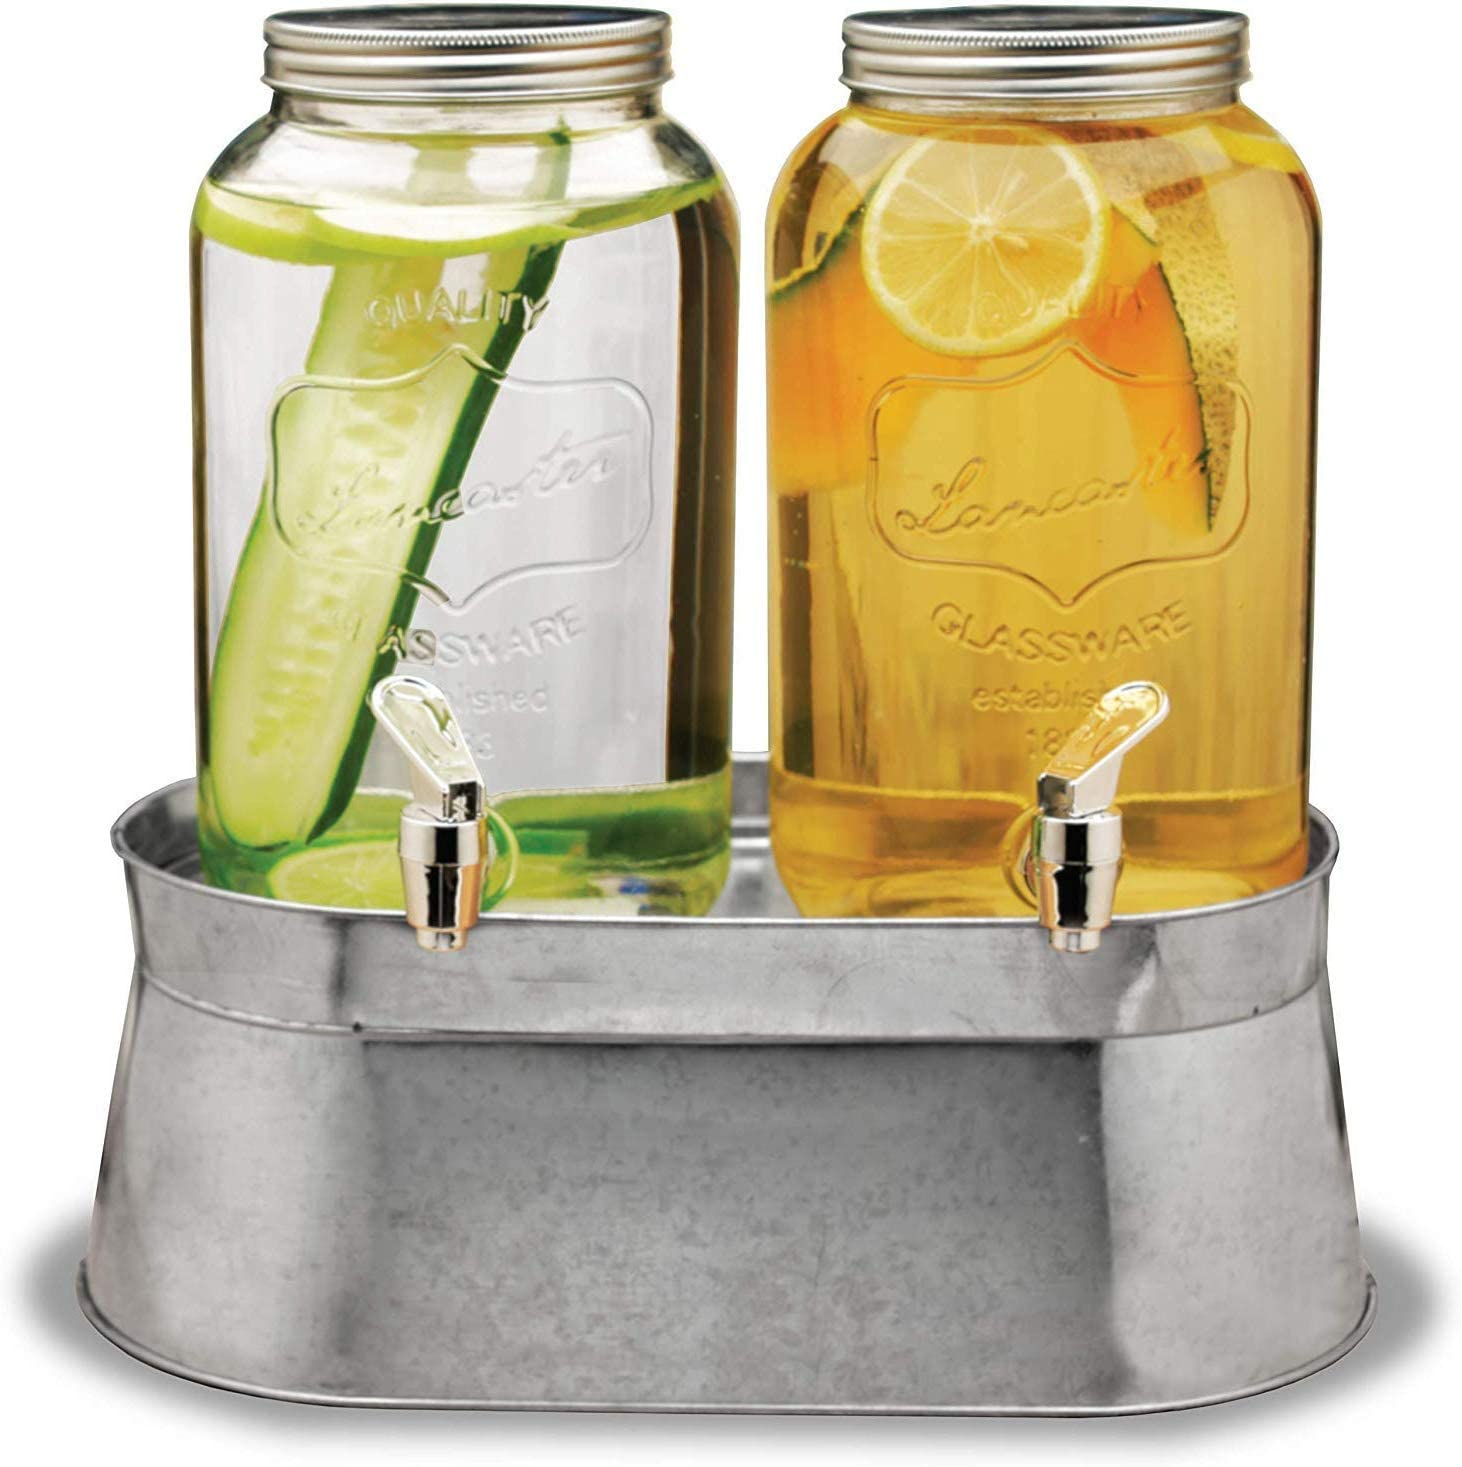 Circleware Double Beverage Dispensers with Metal Stand Fun Sun Tea Party Entertainment Glassware Glass Water Pitcher for Iced Cold Punch Drinks, 120 oz each, Lancaster